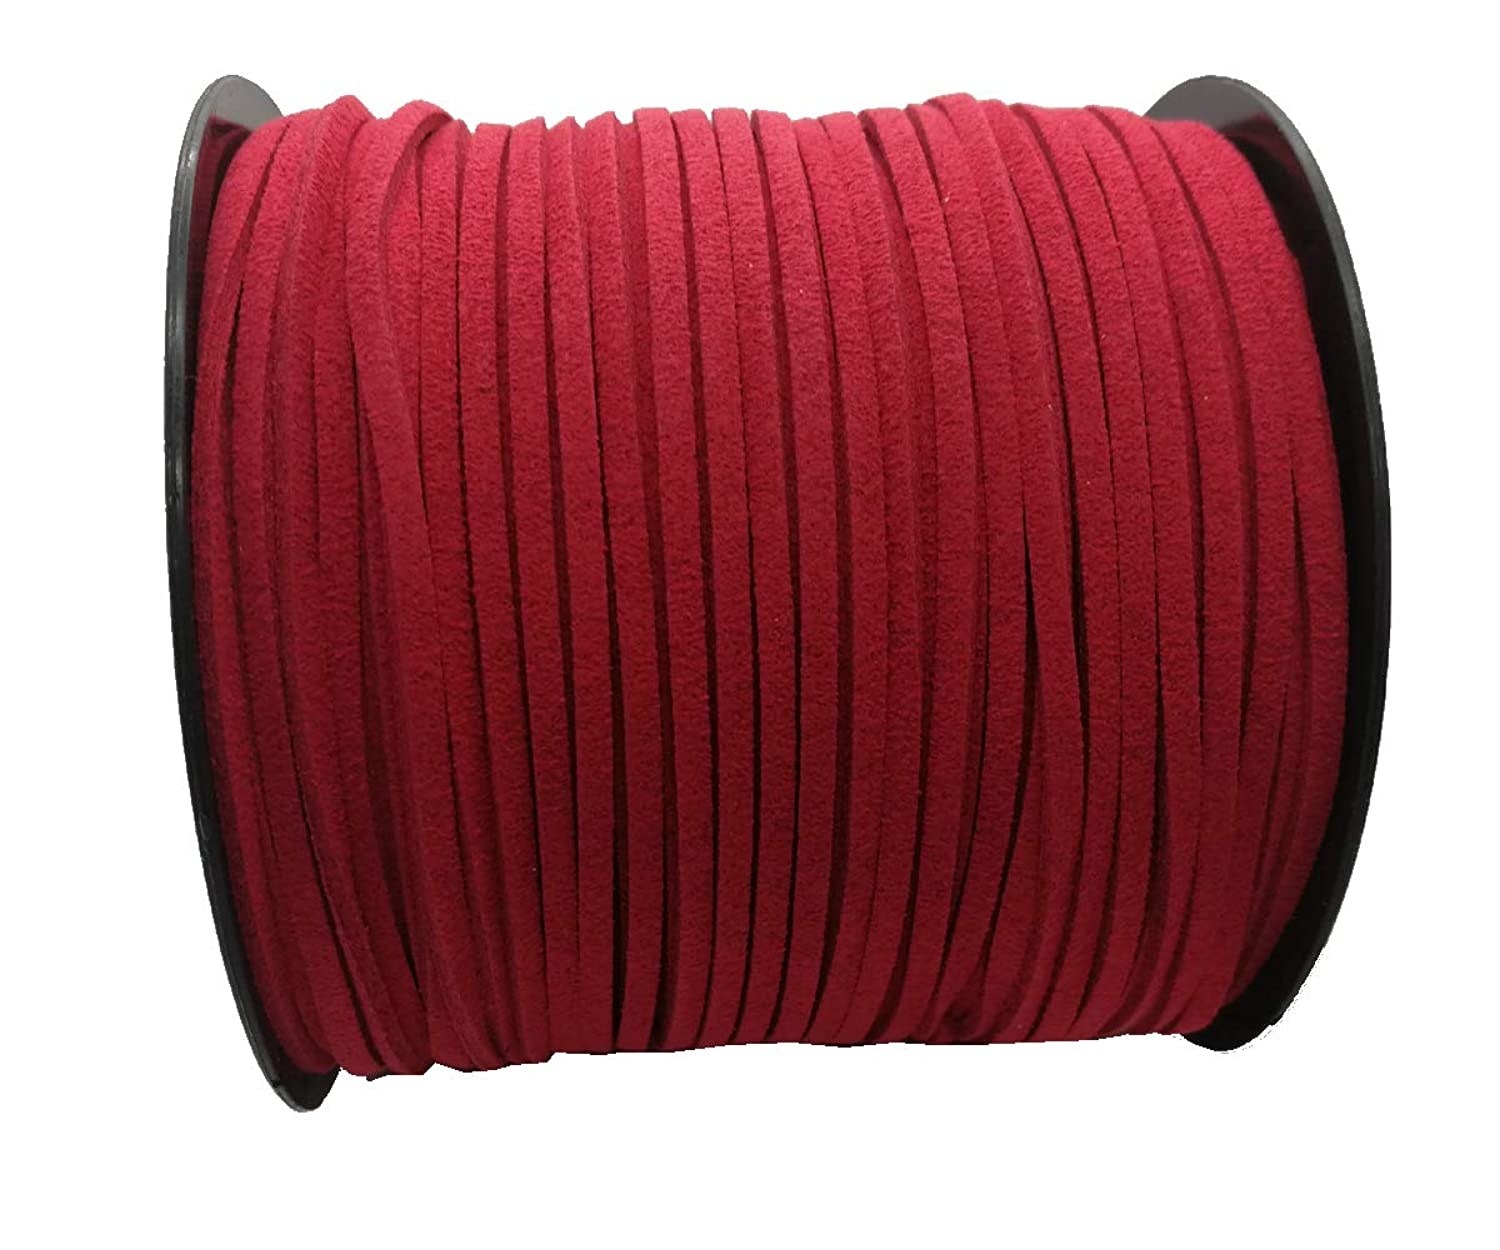 Pamir Tong Strong Suede Leather Lace 100 Yards 2.6mm Faux Leather Cord for Jewelry Making Tassels Bracelet Necklace DIY (Red)